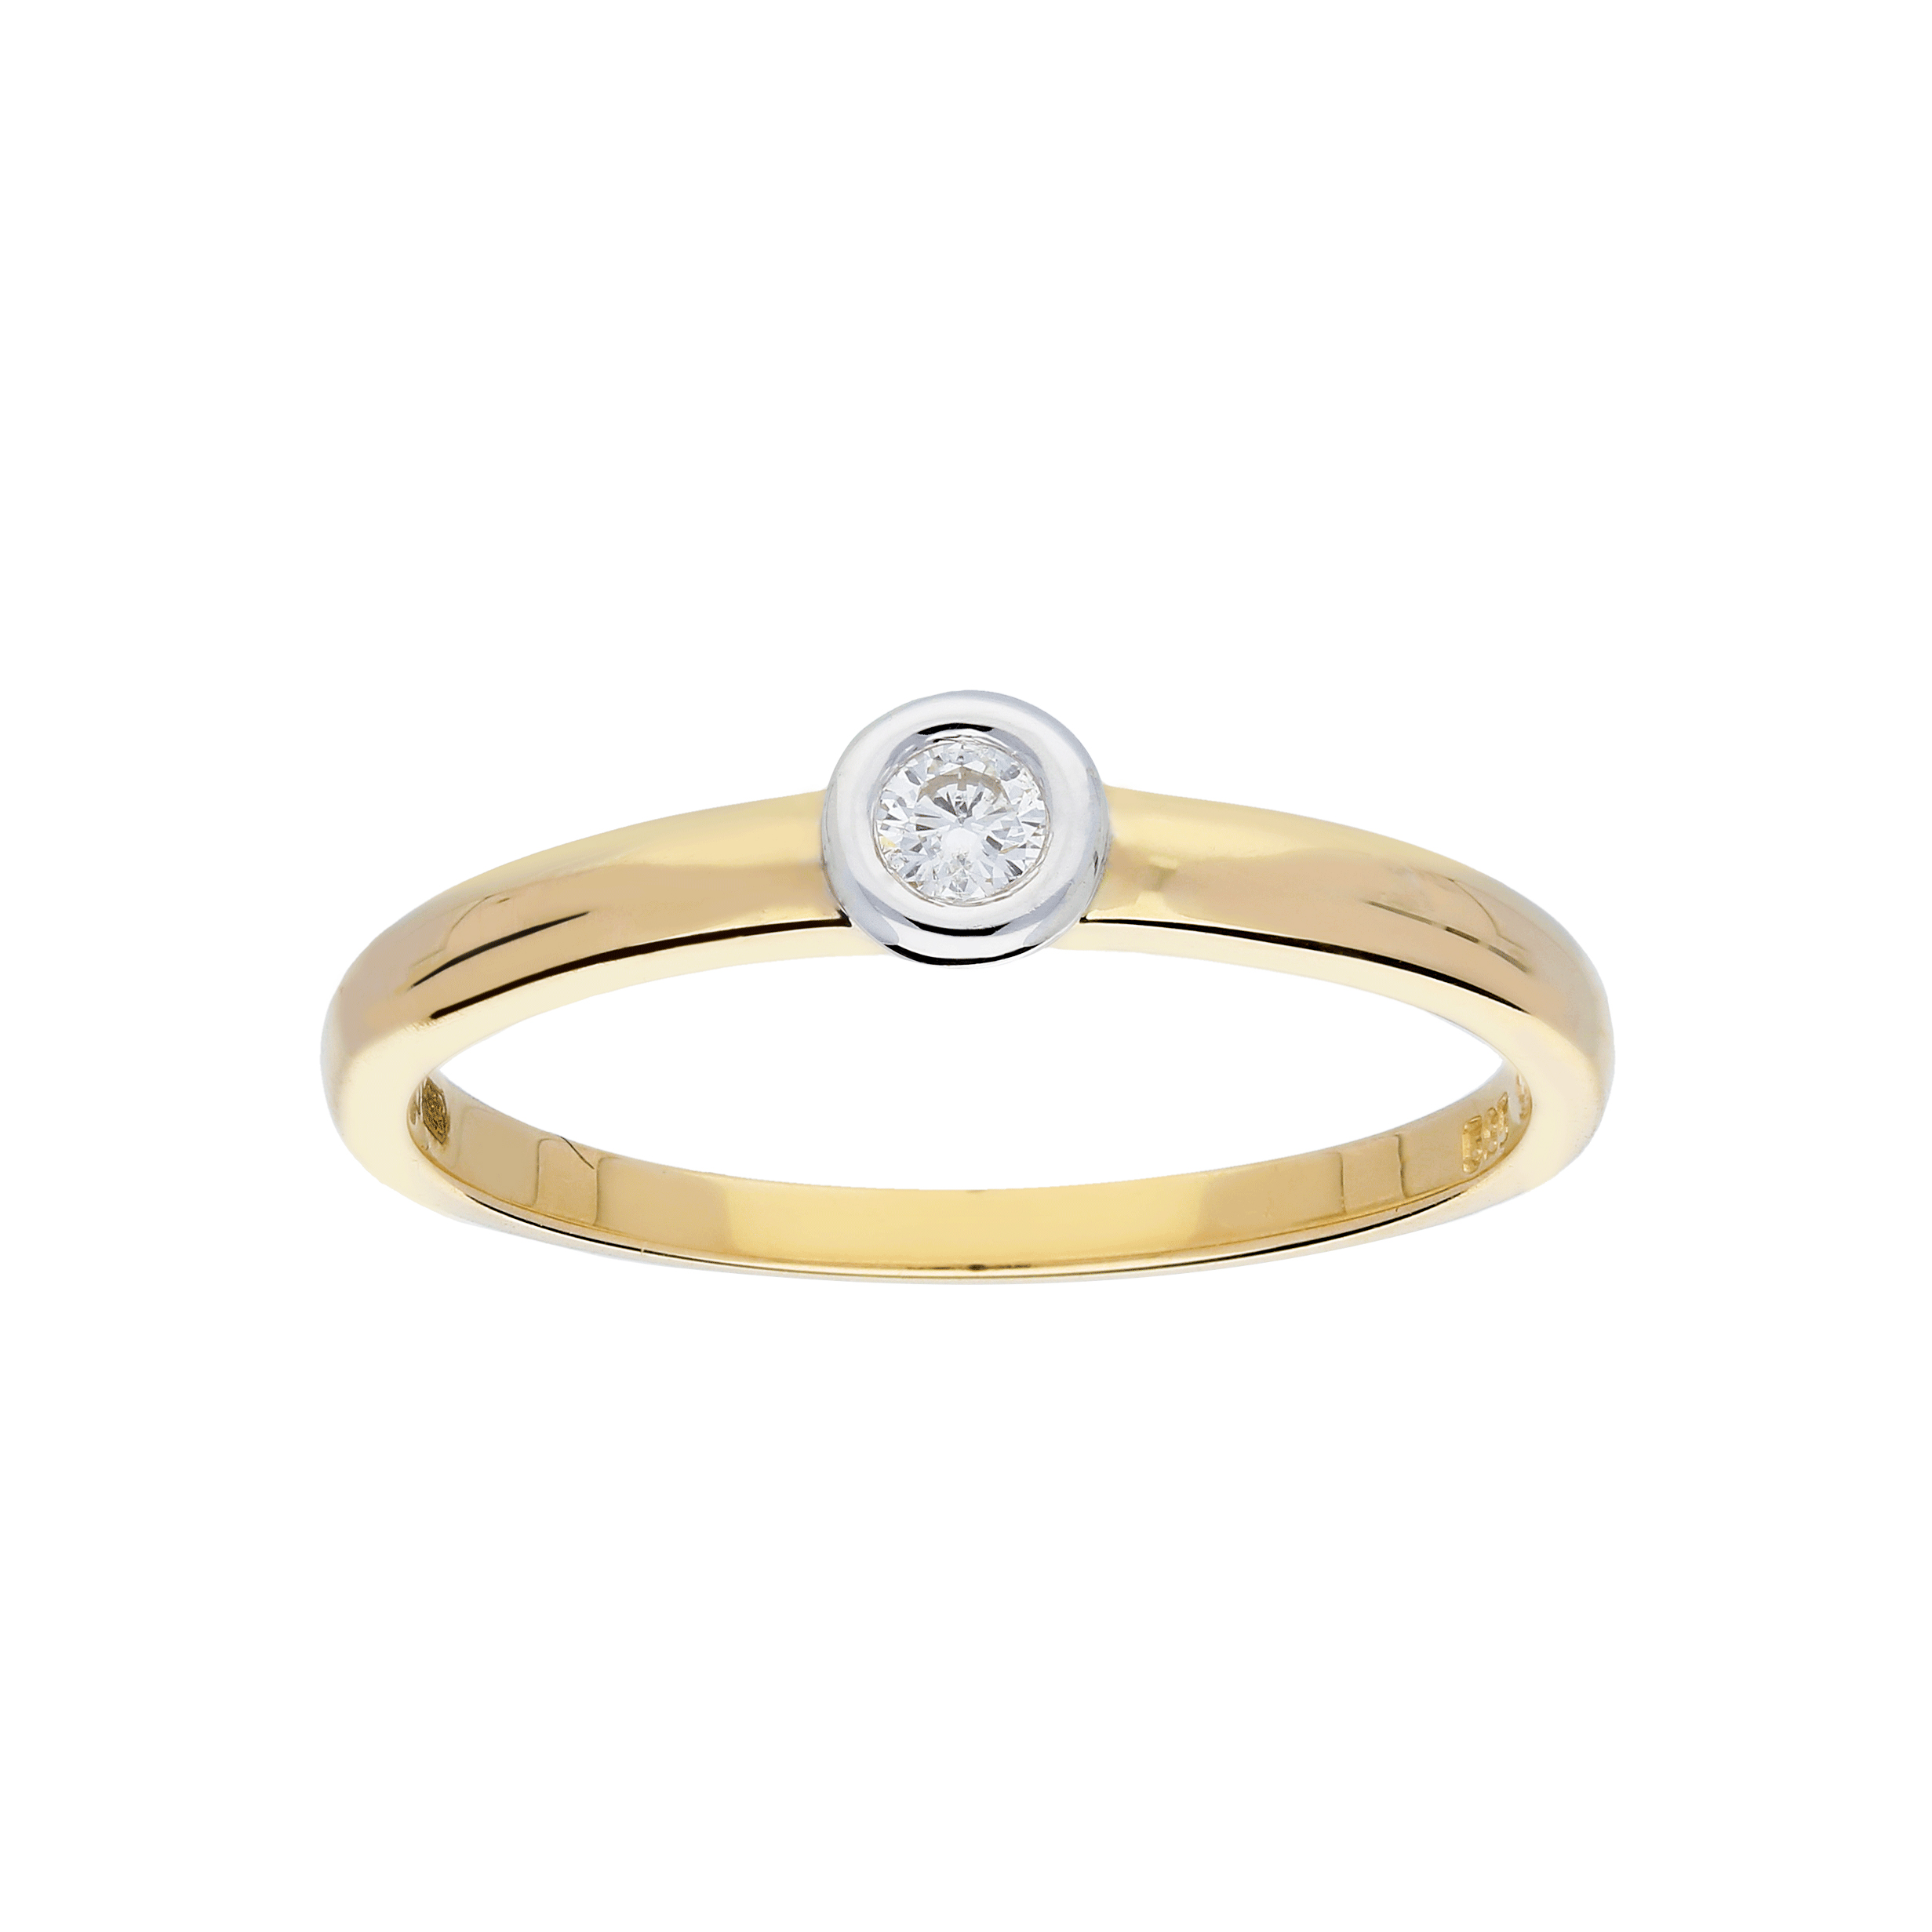 Glow Gouden Ring Bicolor Mat Glanzend Diamant 1 0.05ct G si 214.5308.52